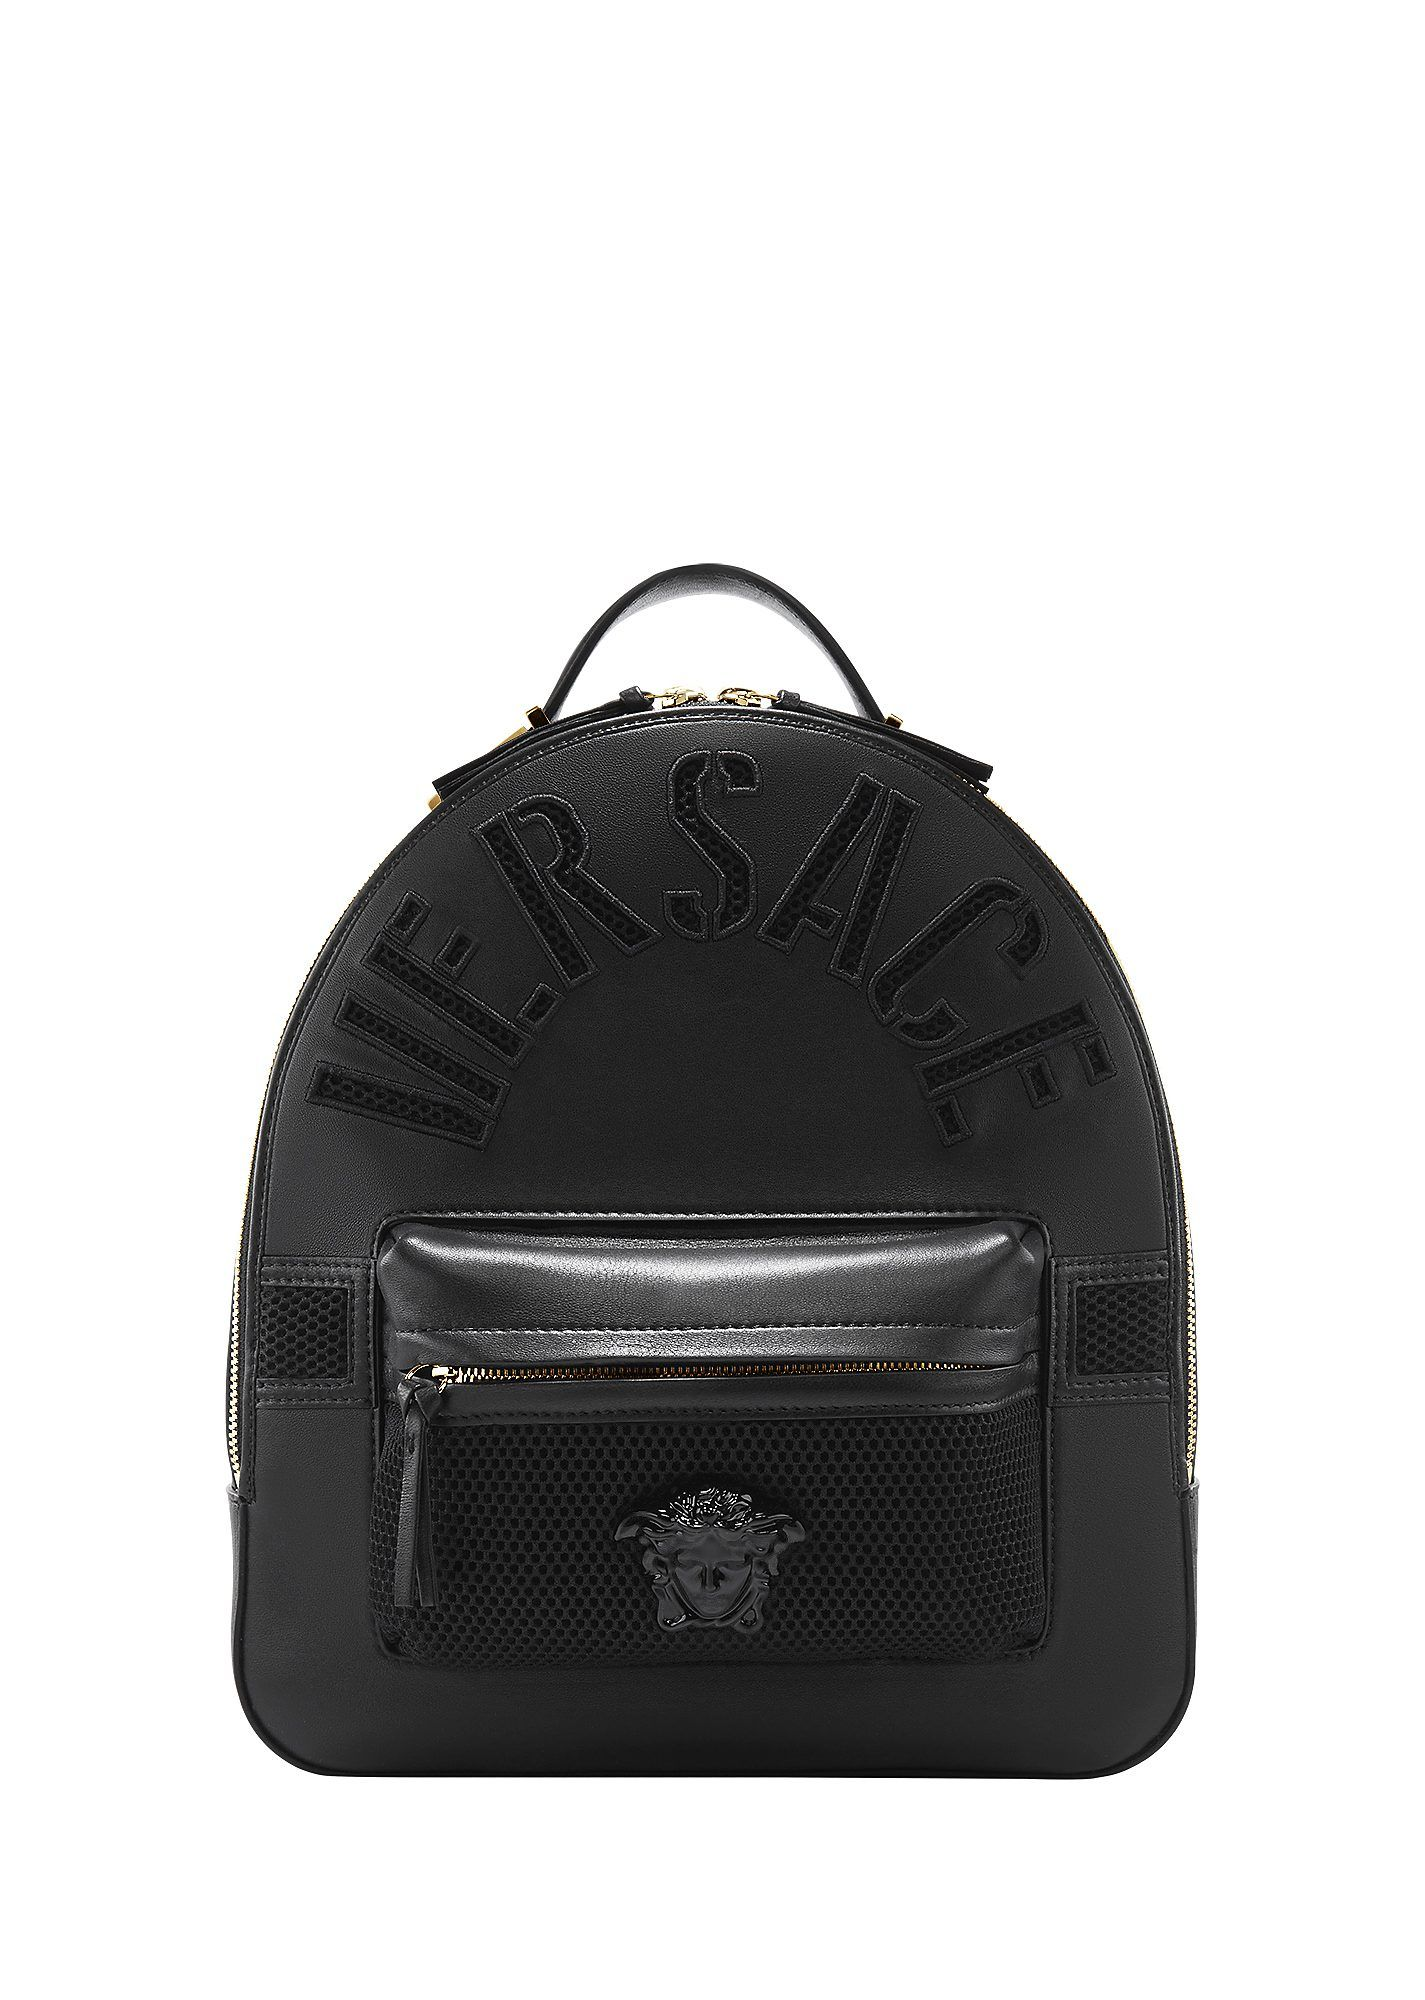 Versace embossed leather backpack versace bags leather